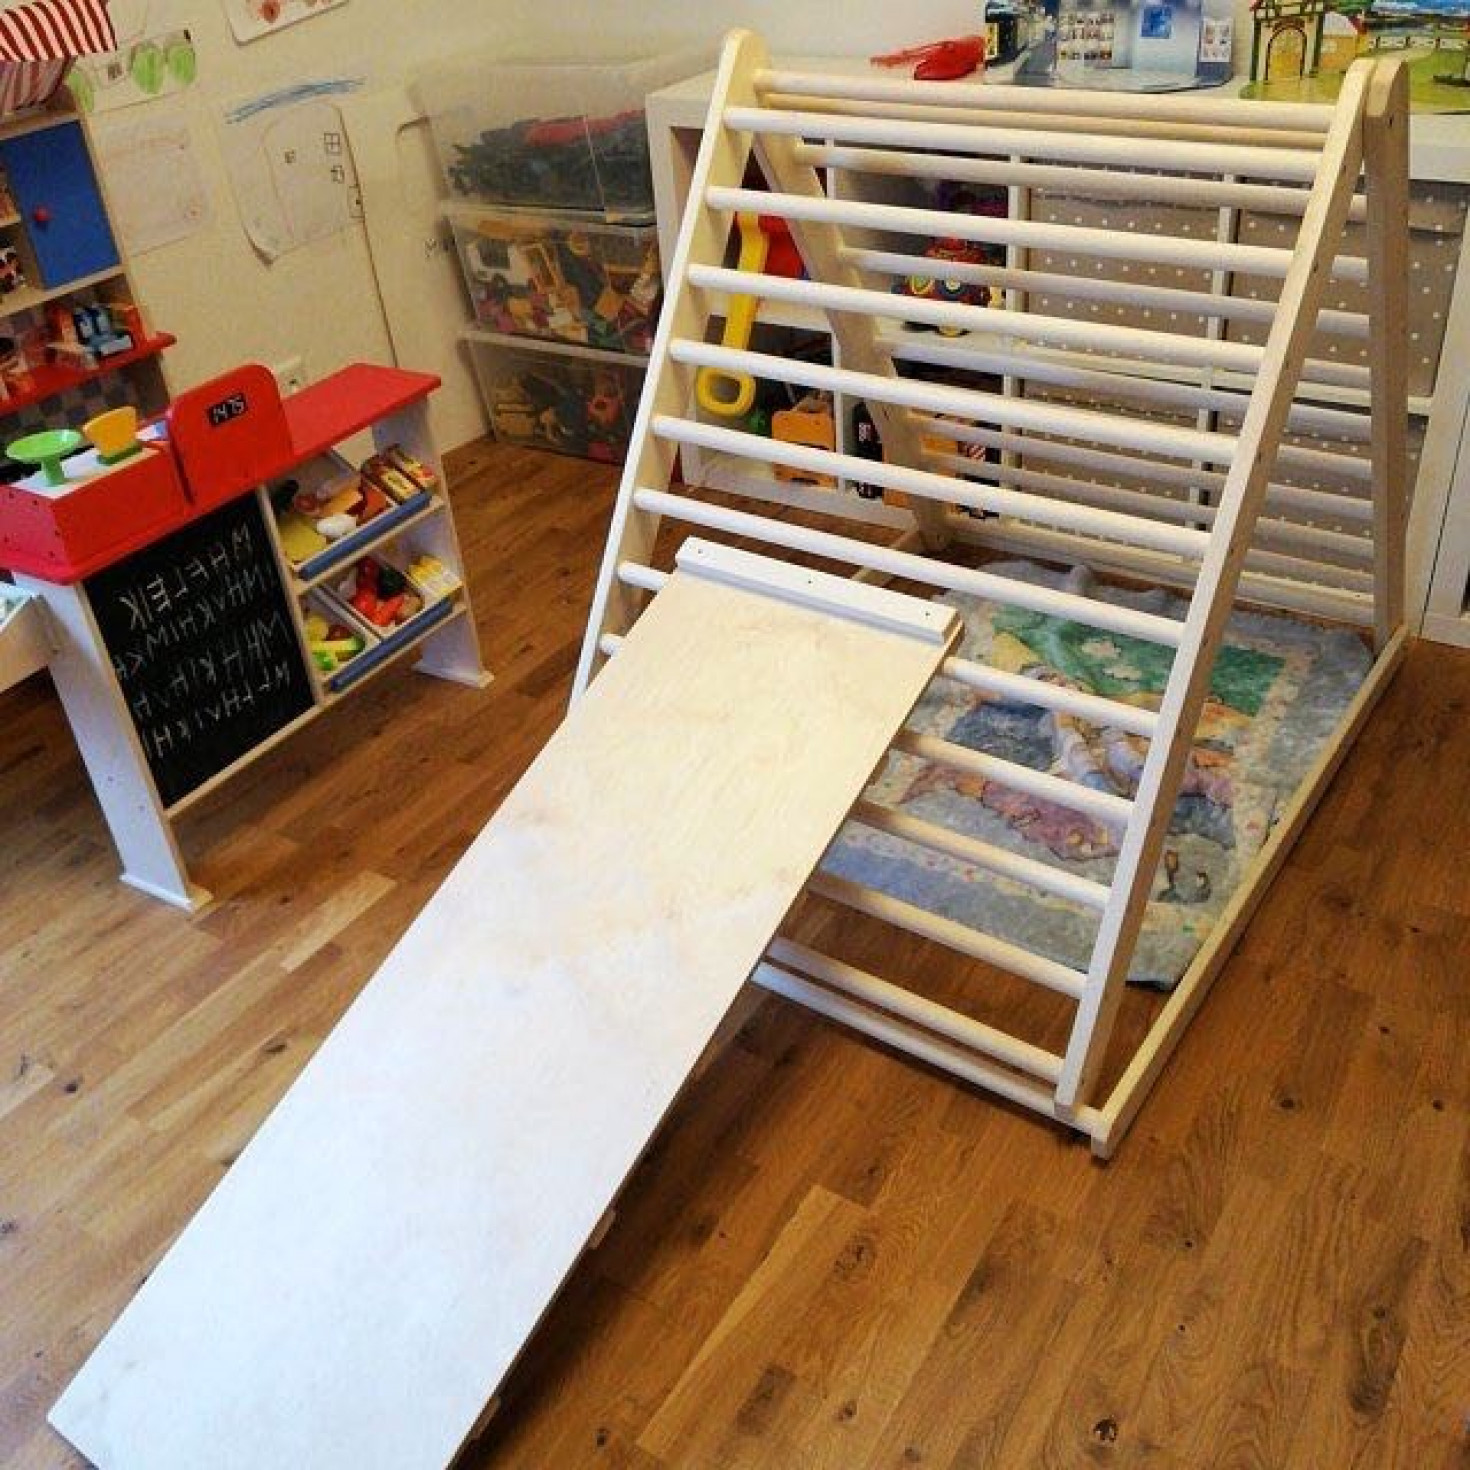 A children's wooden climbing frame with a slide board